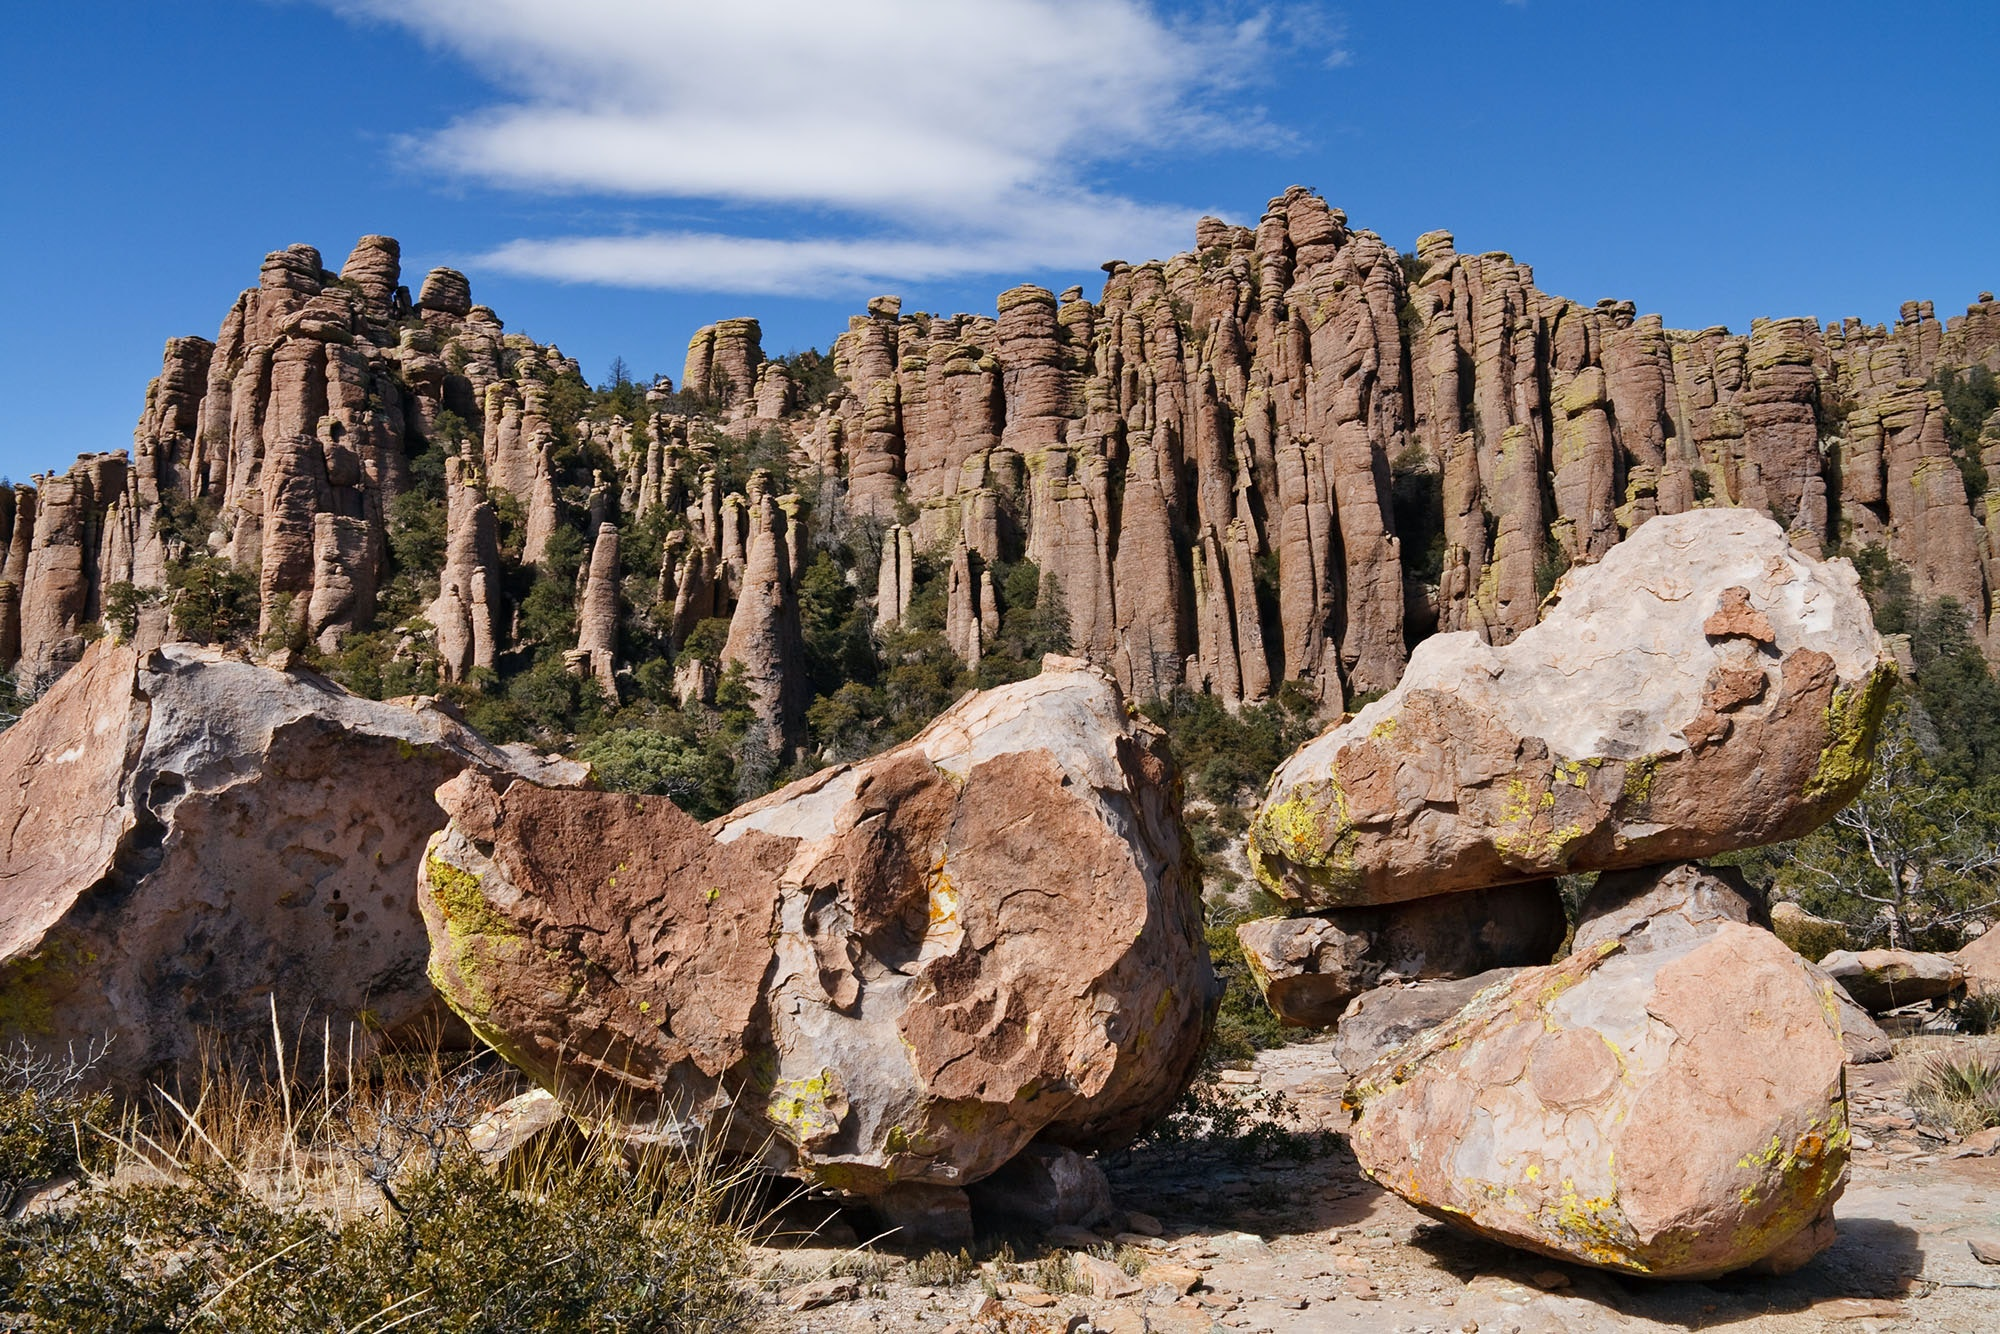 Despite being quite isolated, Chiricahua National Monument has become a favorite destination for local hikers.